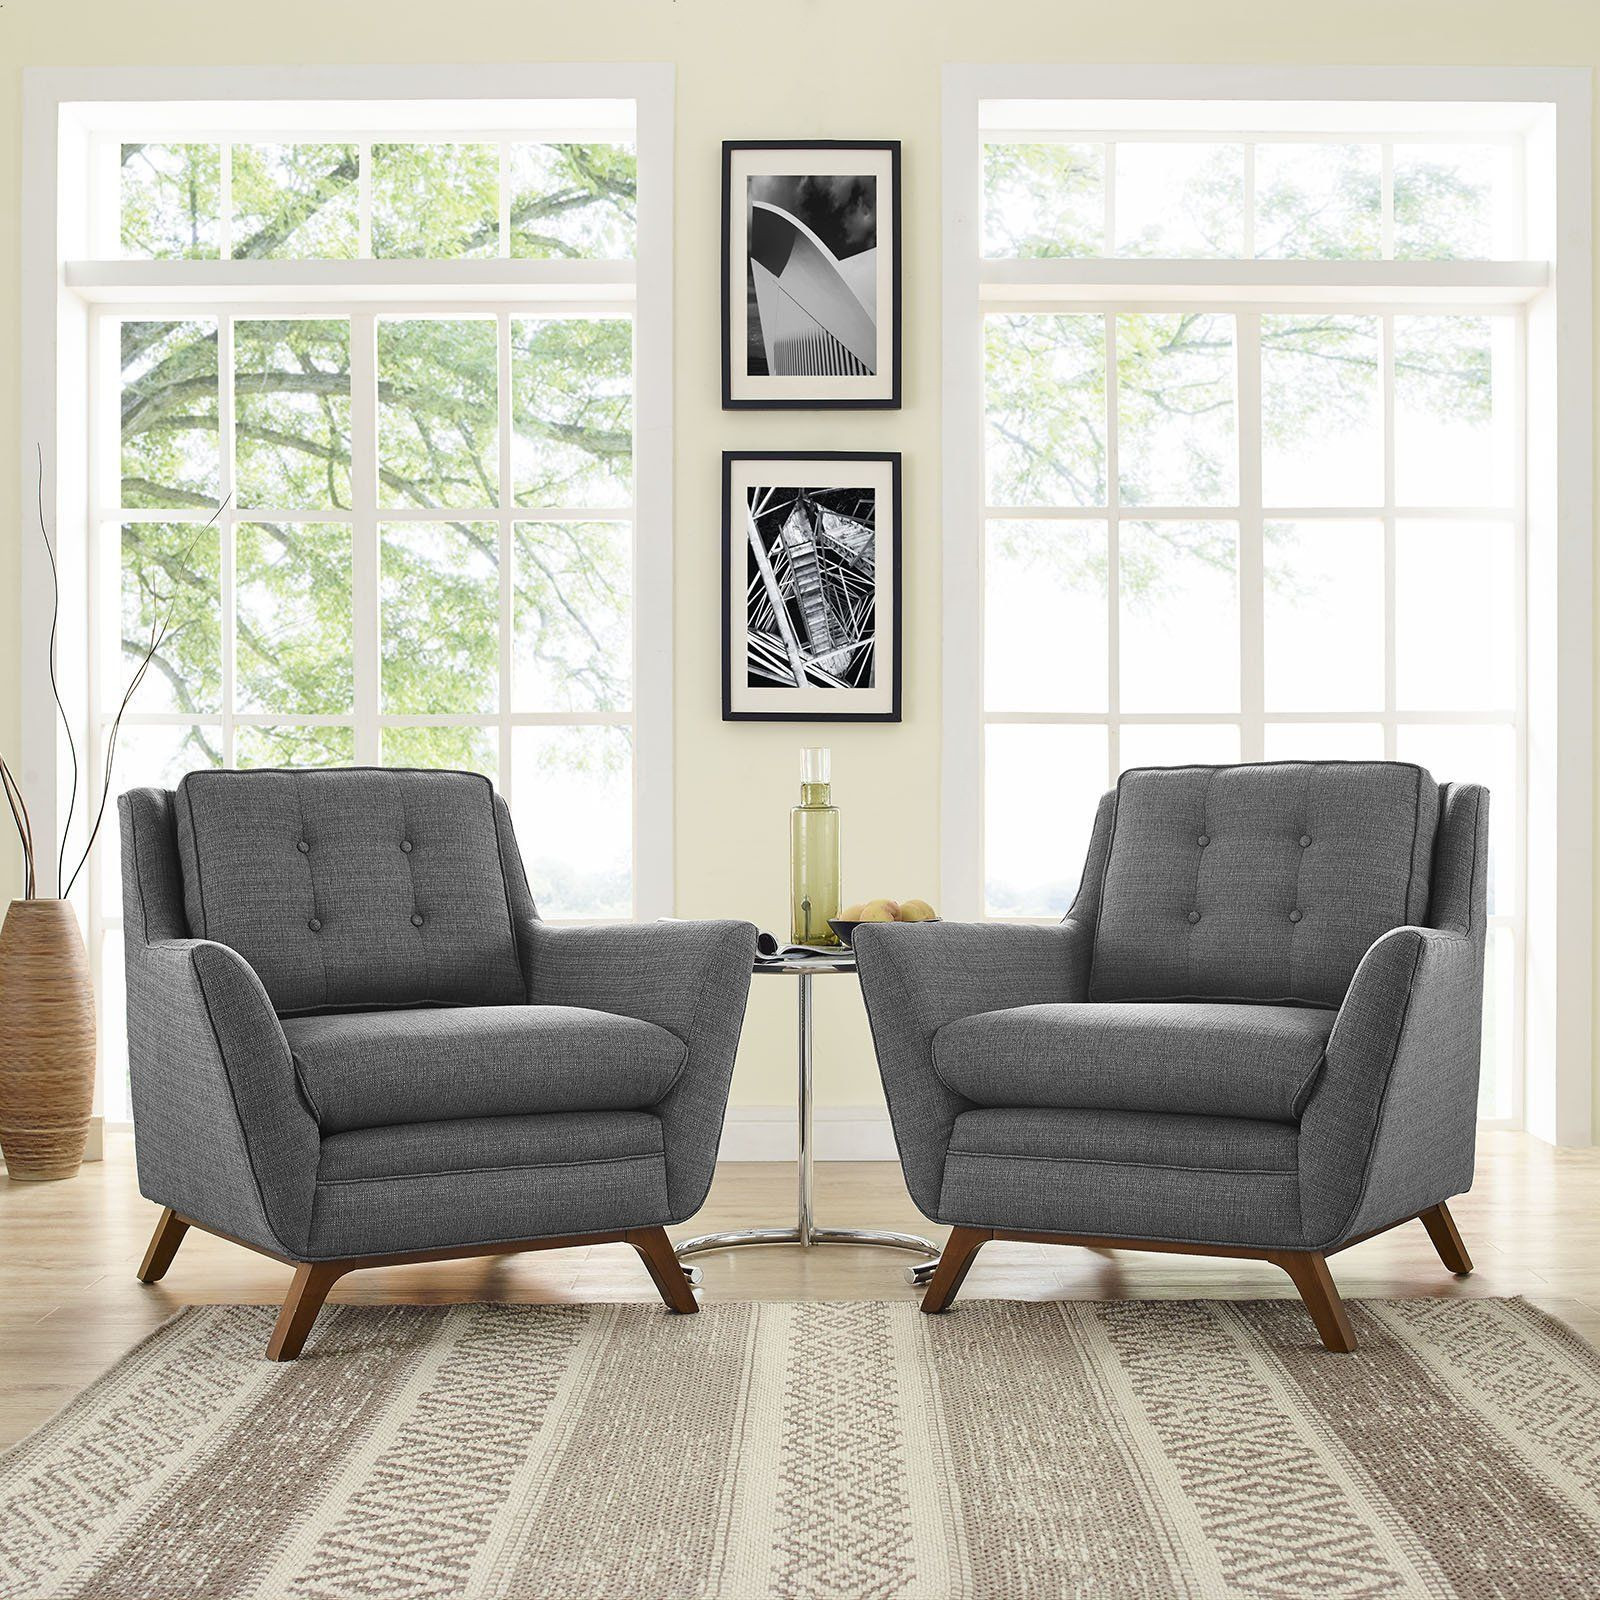 Modern Living Room Sets Cheap  Modway Furniture Modern Beguile 2 Piece Upholstered Fabric